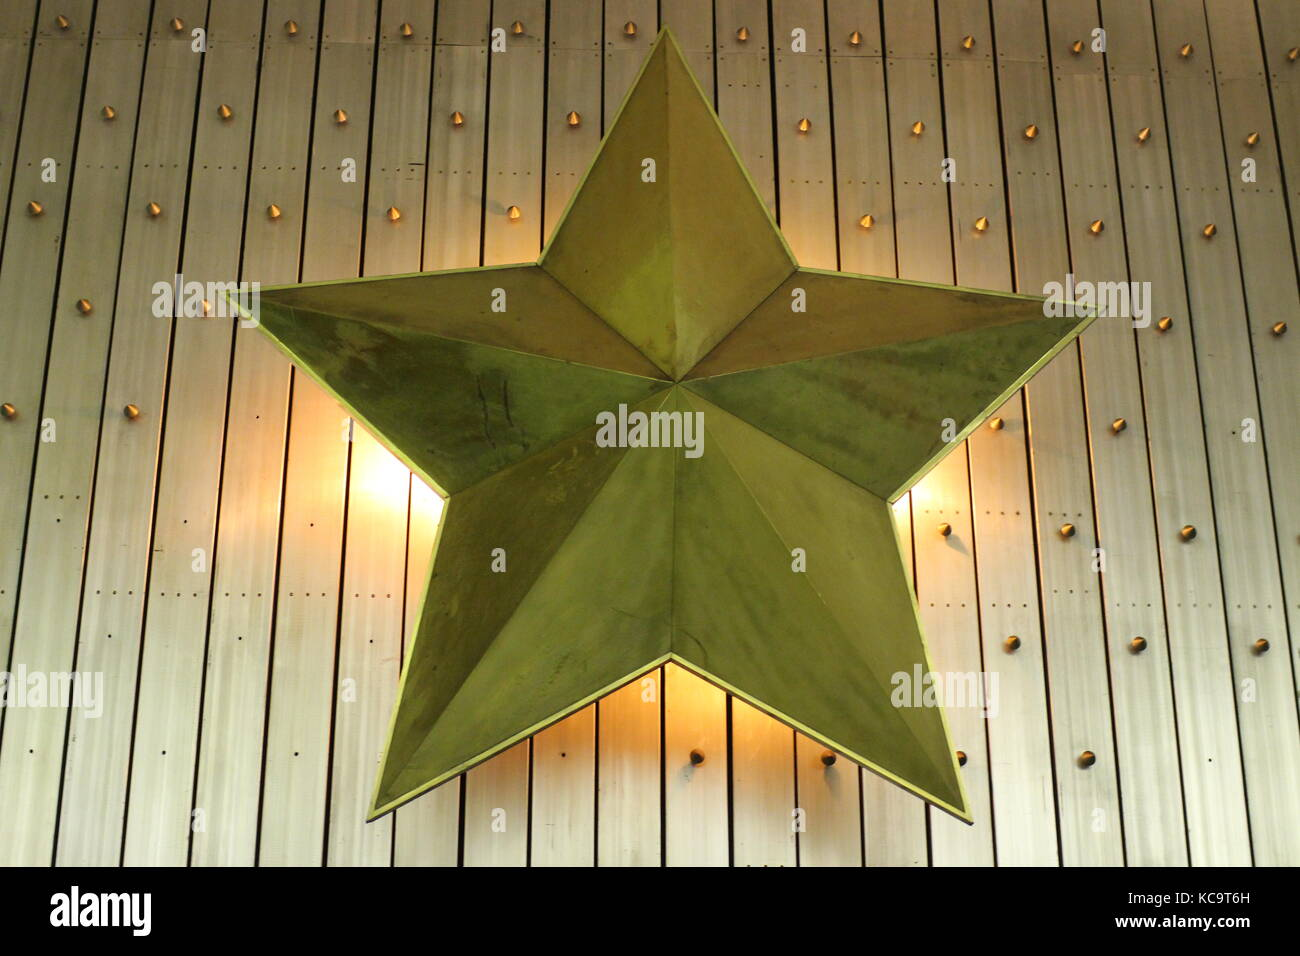 five-pointed star decorative wall lamp, Soviet symbols in art - Stock Image